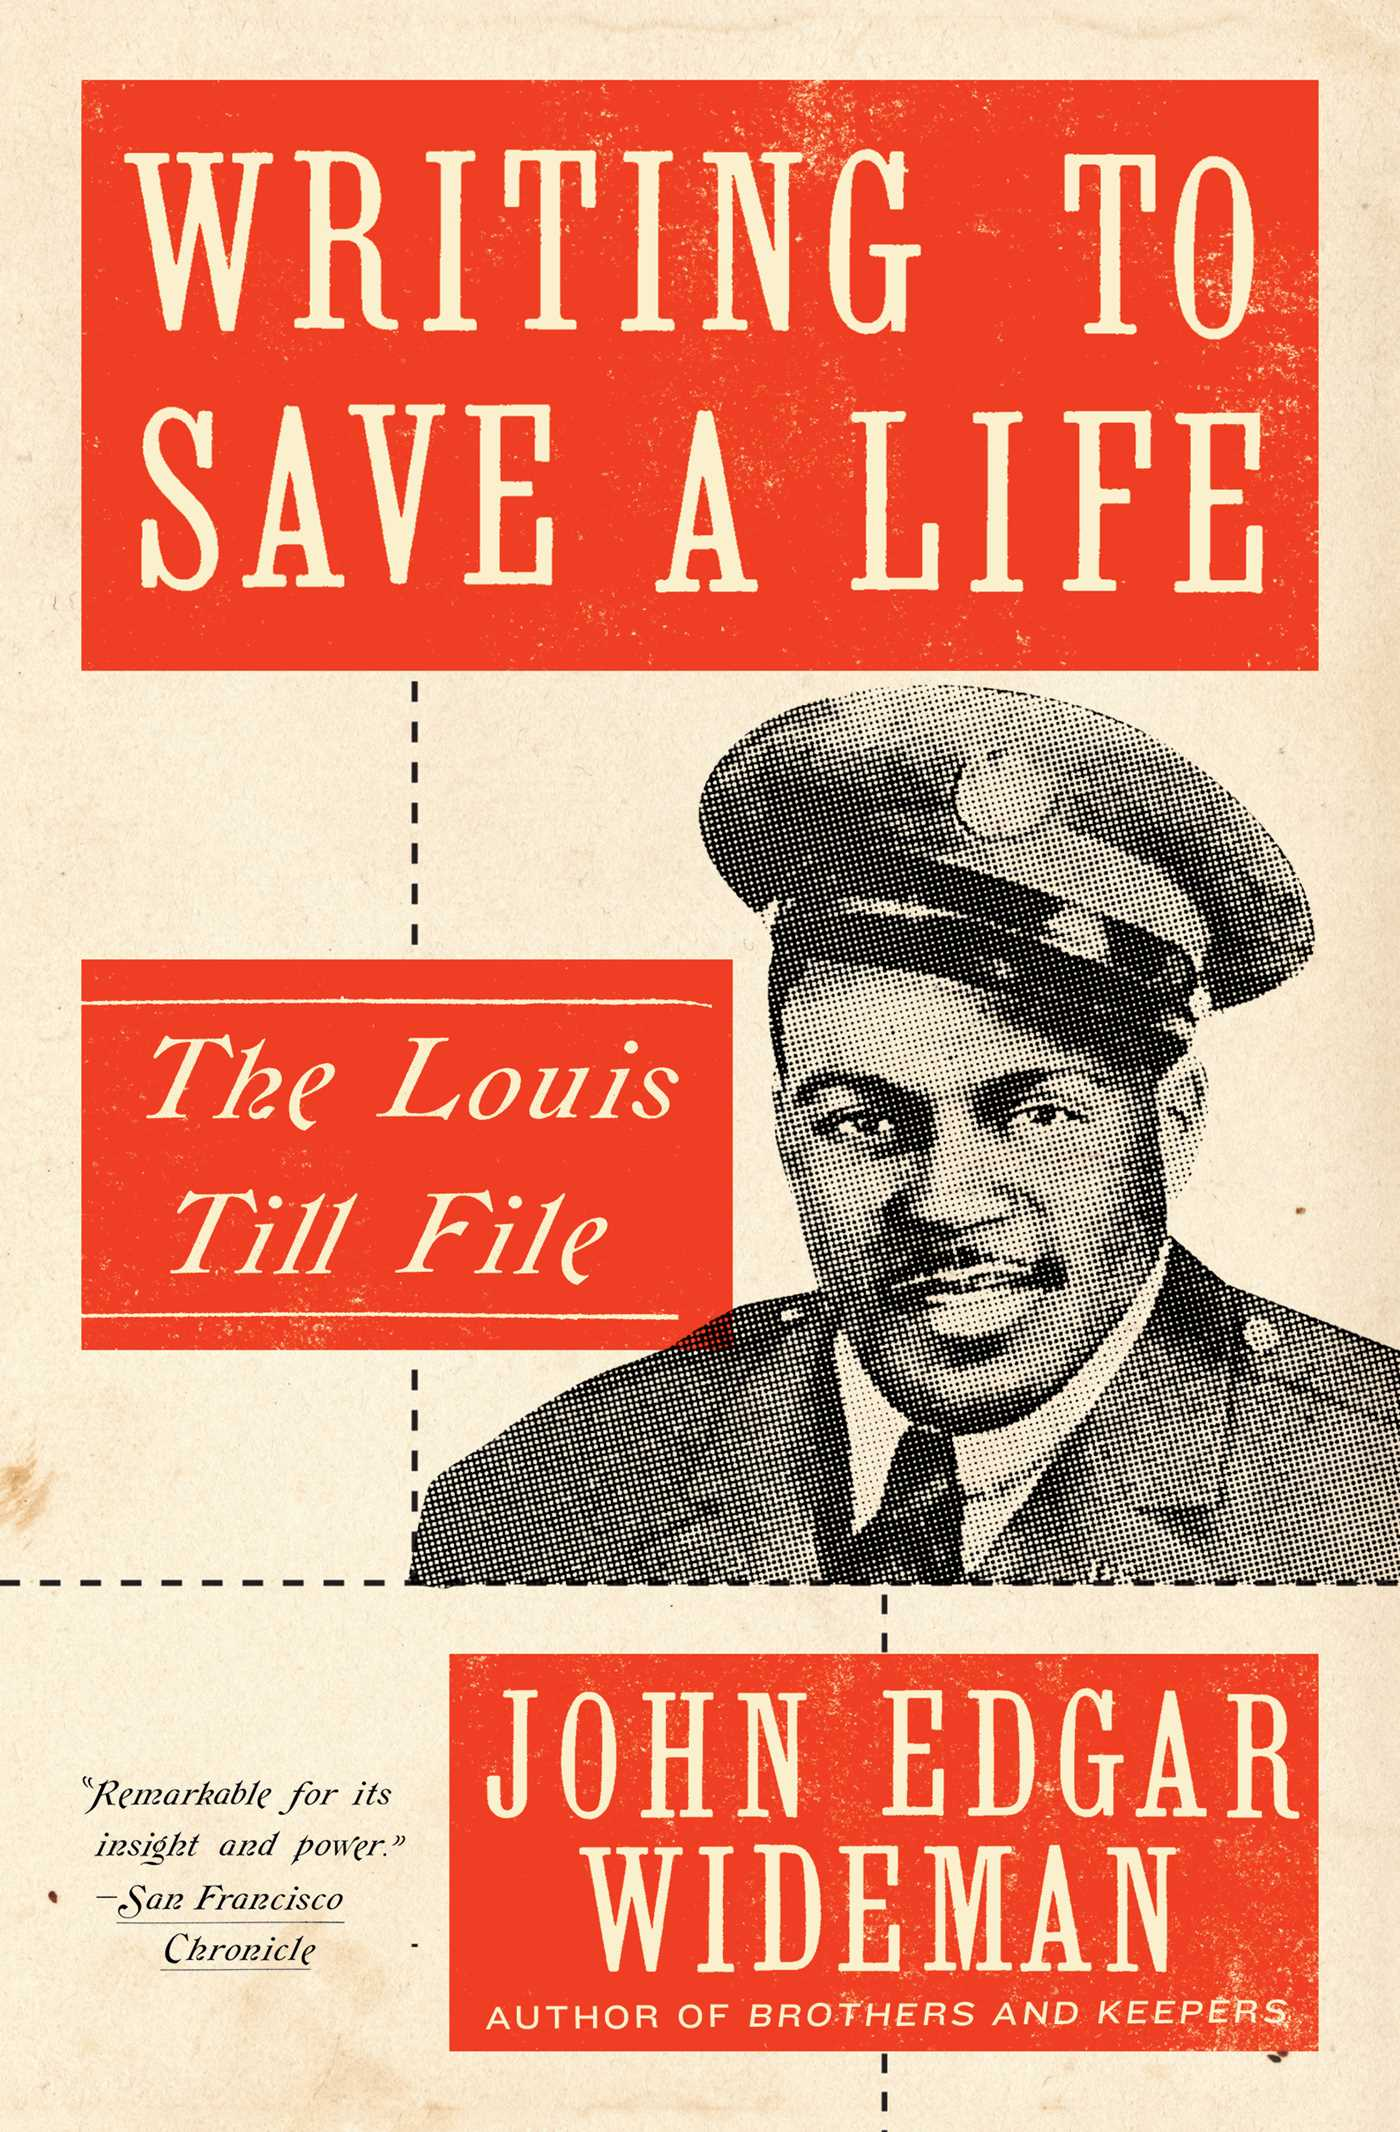 our time john edgar wideman With its time-hops in narrative, poetic wordplay and blurred lines between fact, fiction and memoir, reading john edgar wideman's new book, writing to save a life: the louis till file, is to ride shotgun in his tricked-out time machine to a familiar destination: the jagged fault lines of america's racial divide.